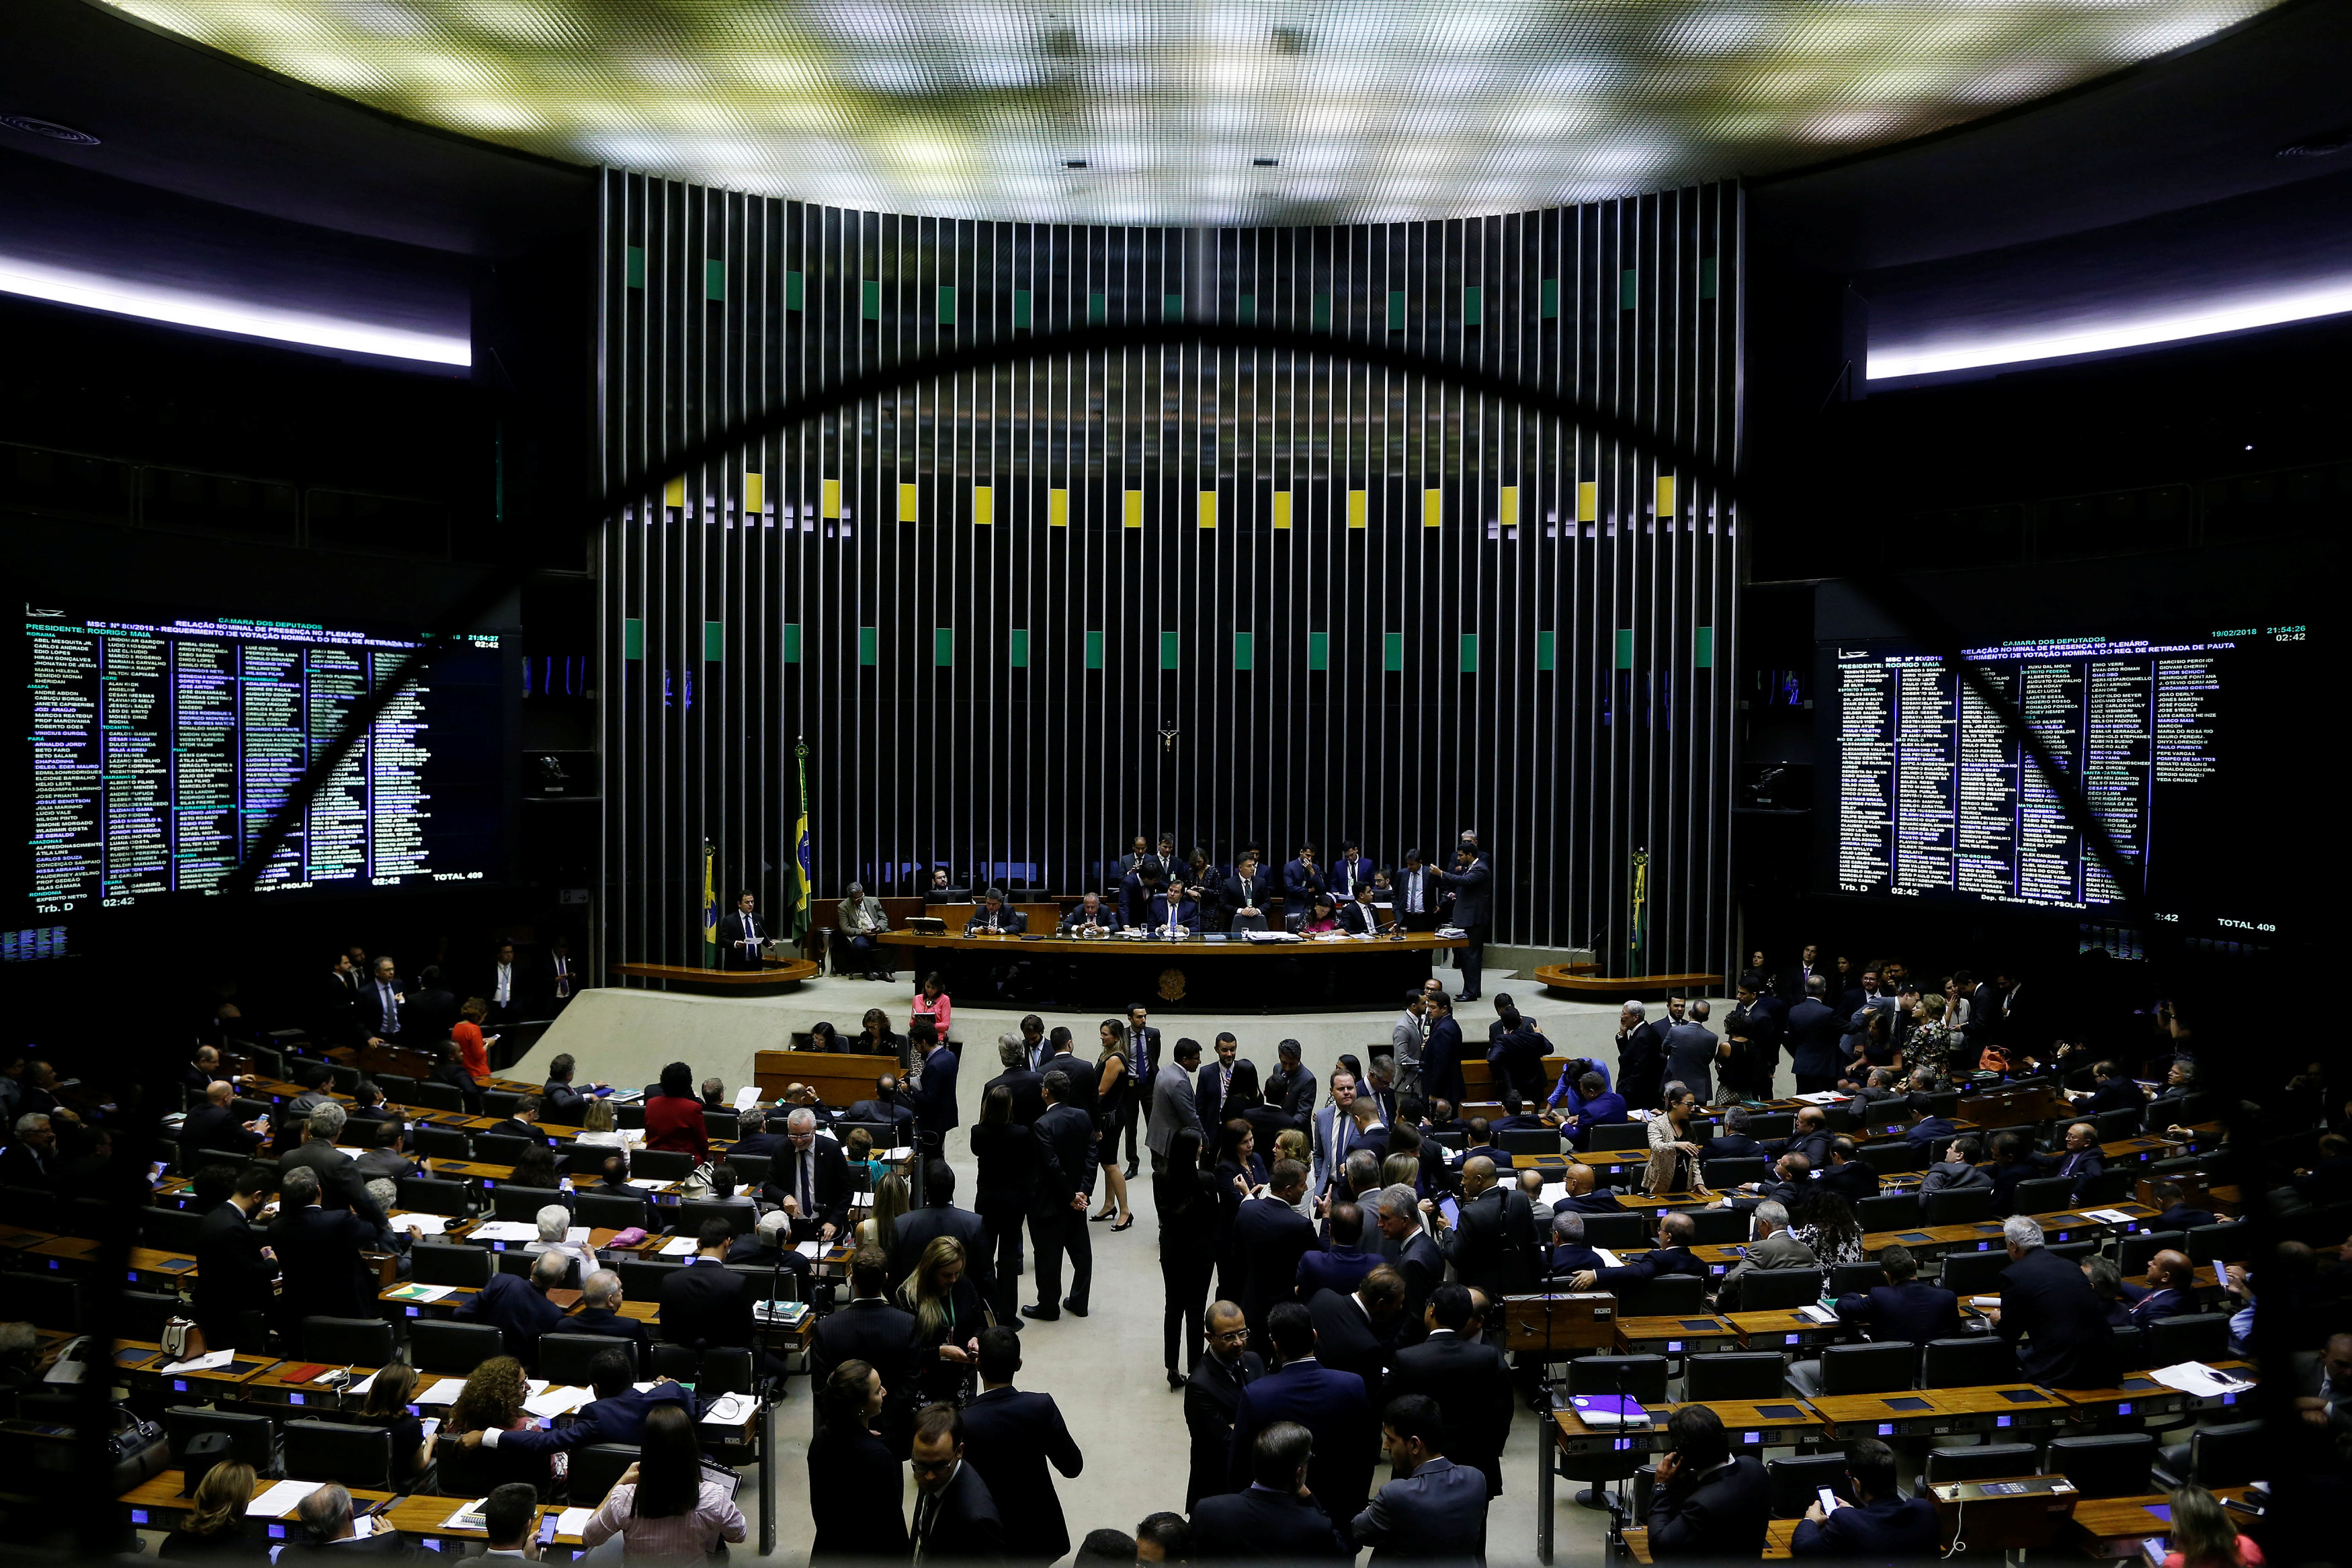 Brazil: Security intervention in Rio okayed